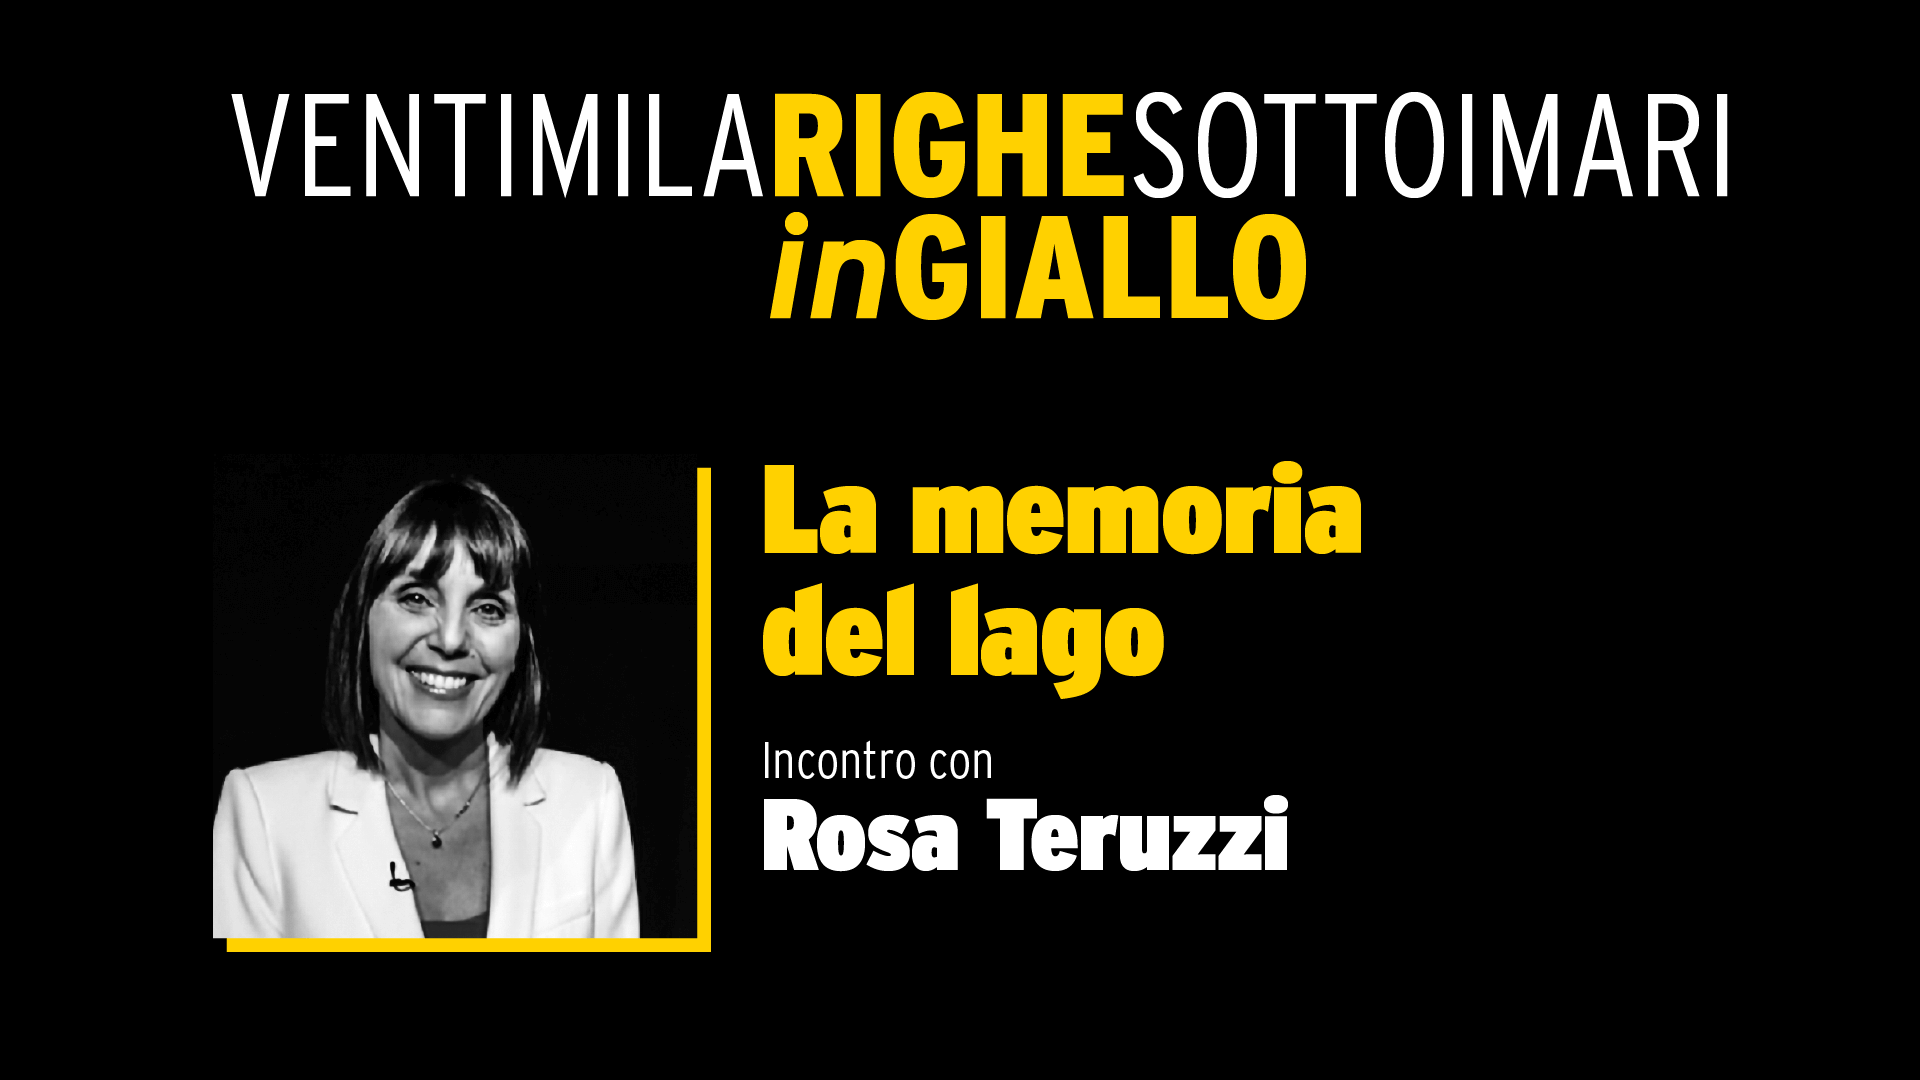 La memoria del lago - Video Integrale